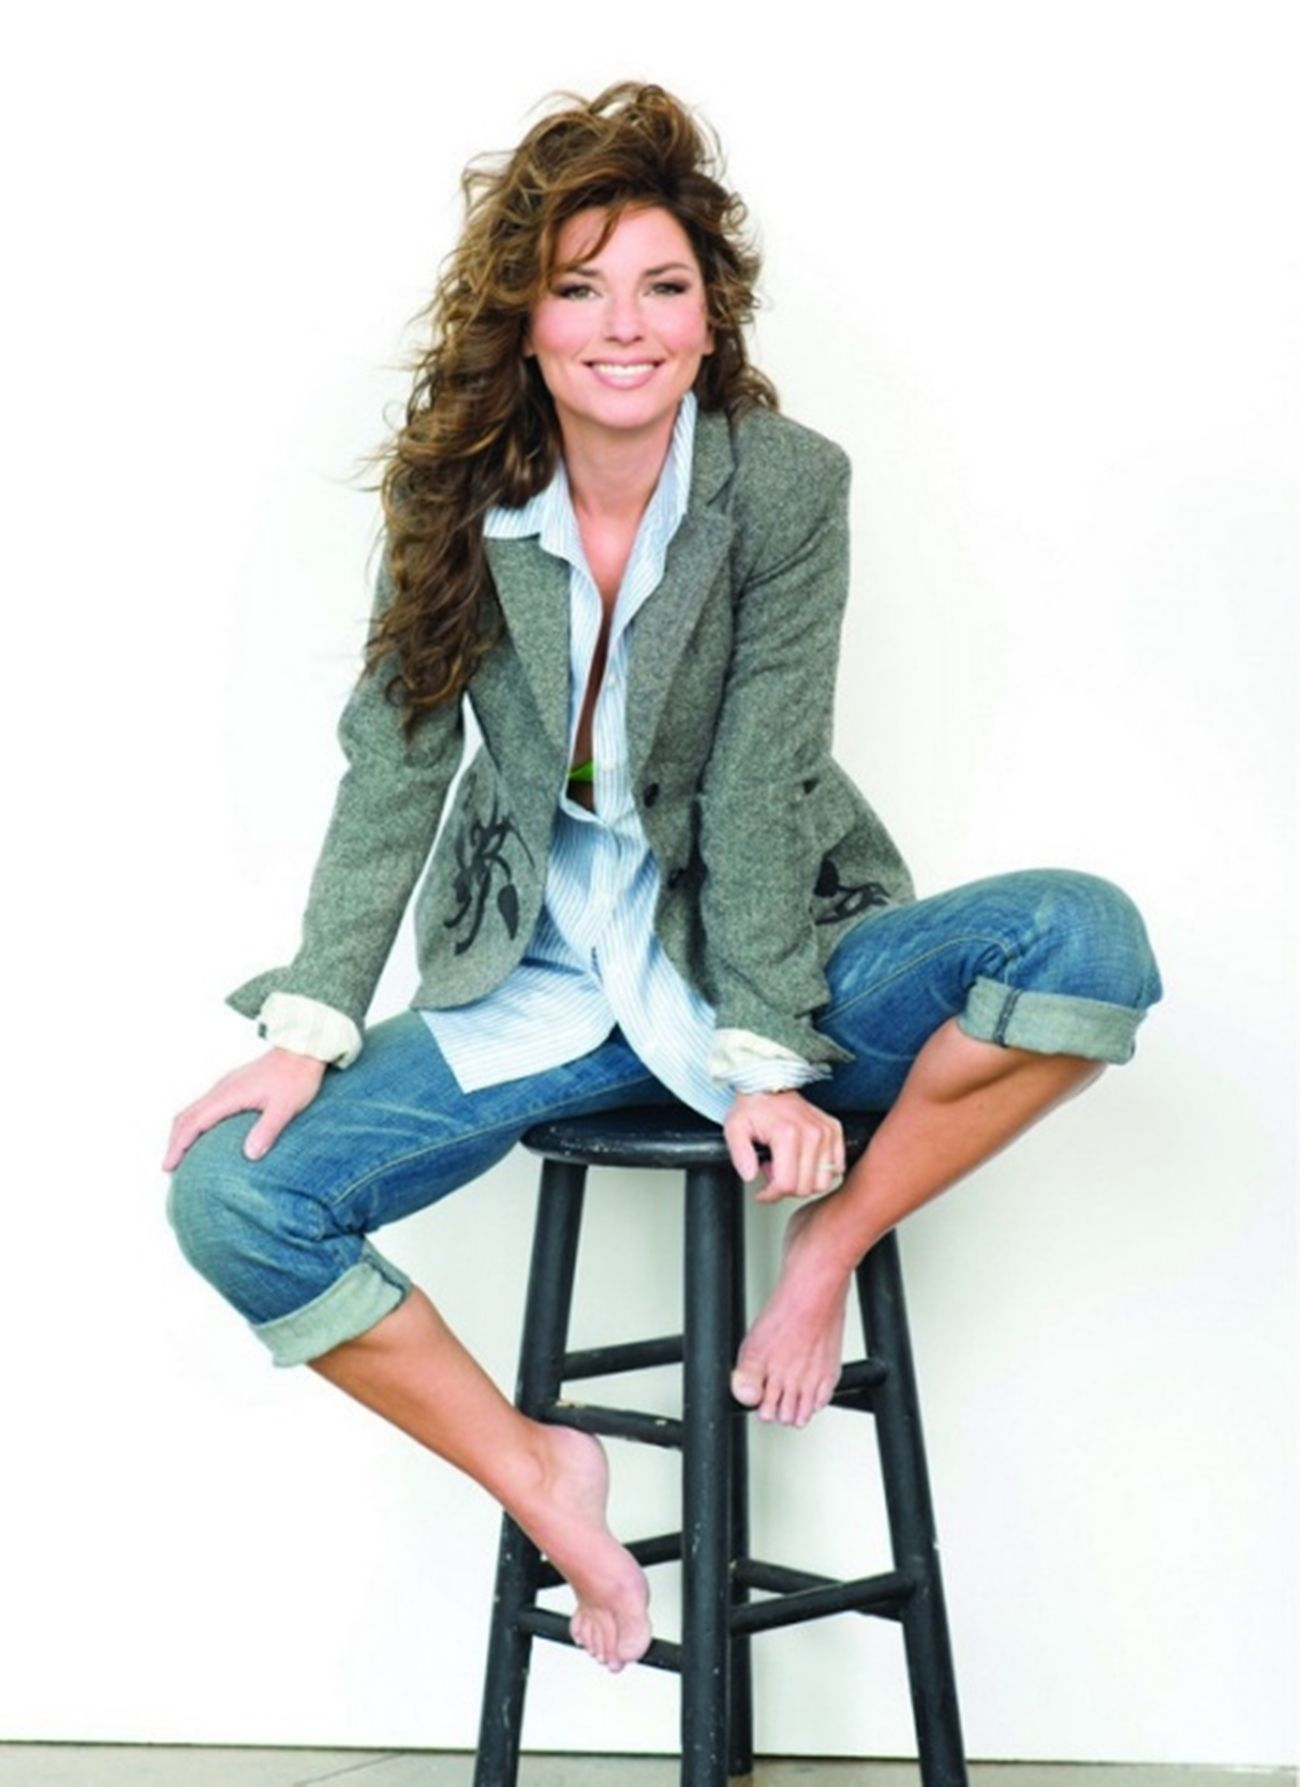 Shania Twain in 2019 Shania twain pictures, Country